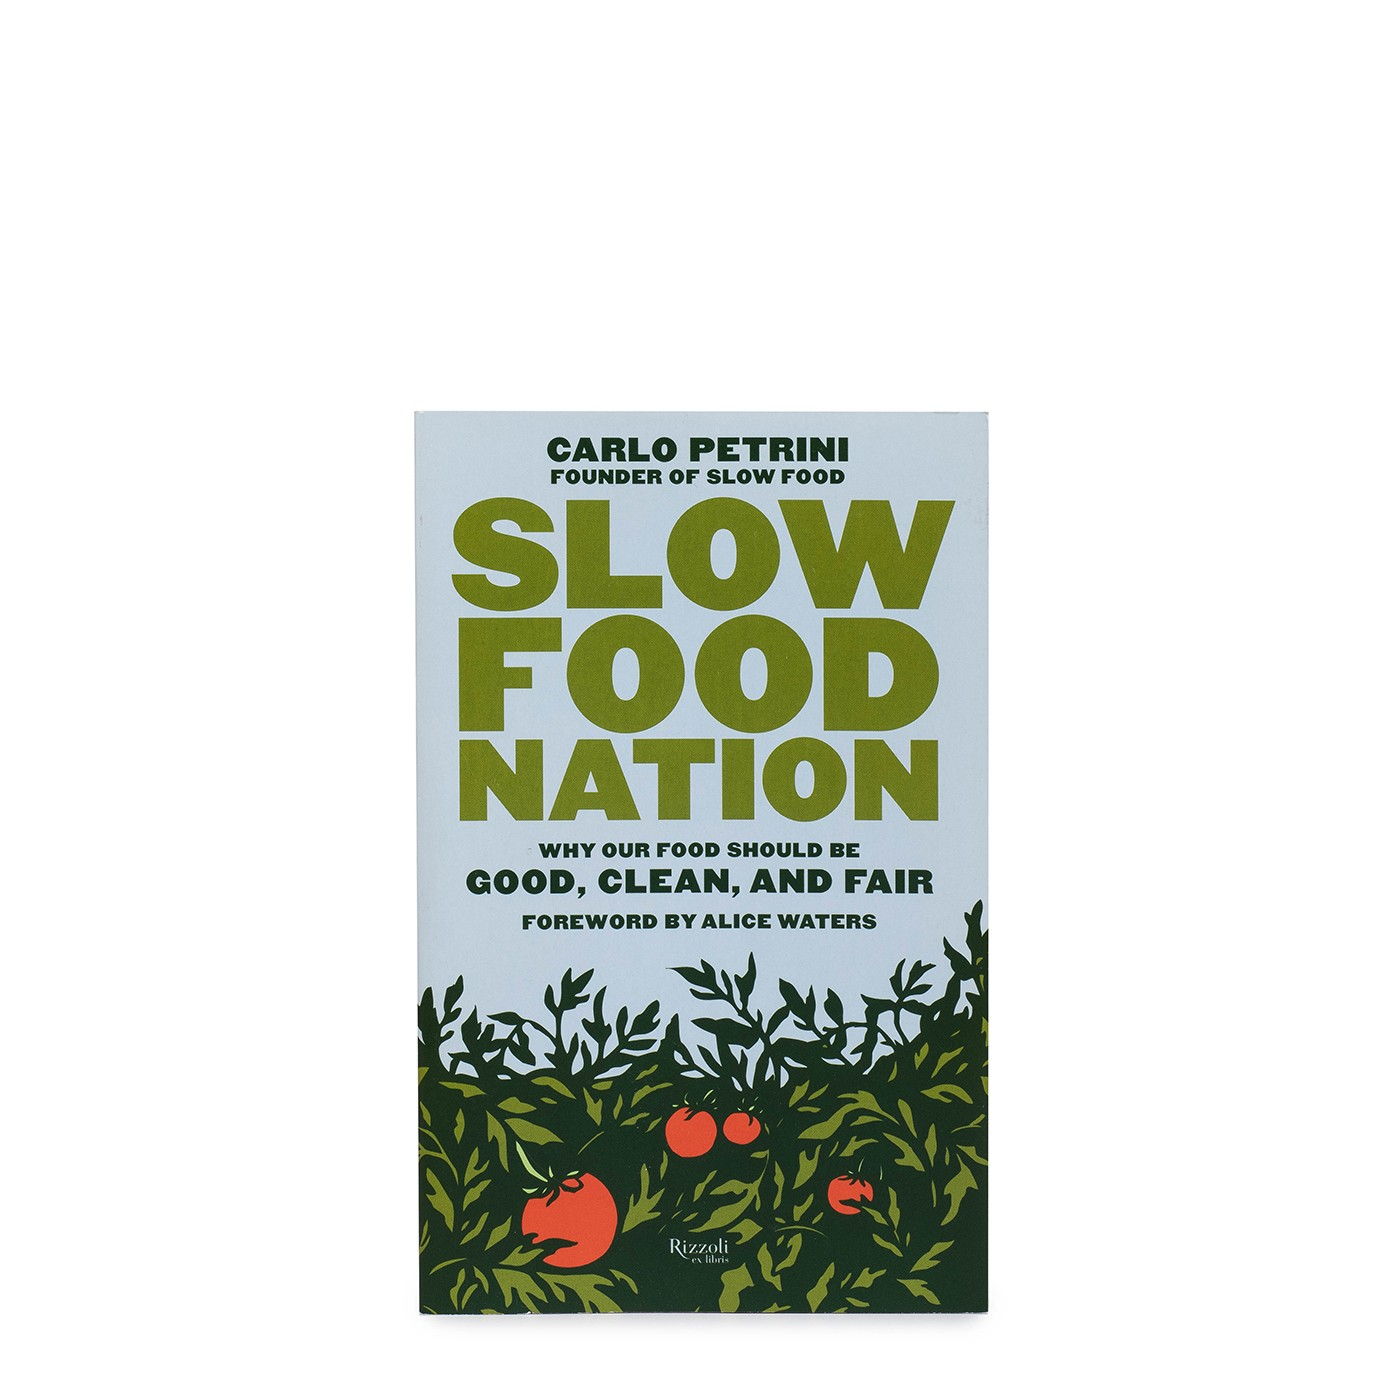 Slow Food Nation (paperback)